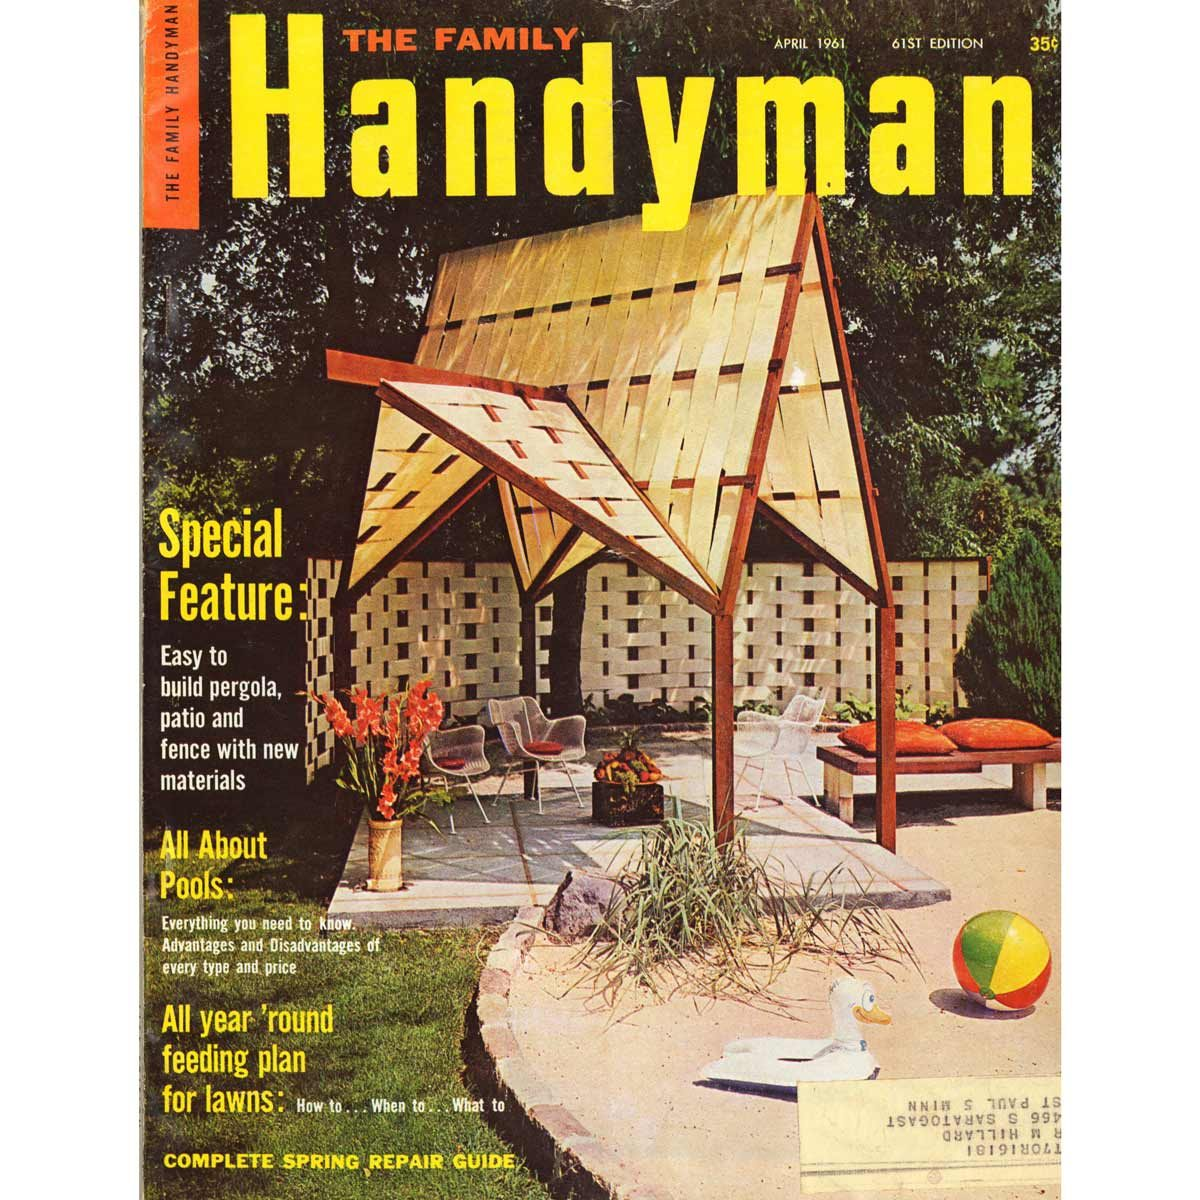 Vintage Family Handyman Covers from the '60s